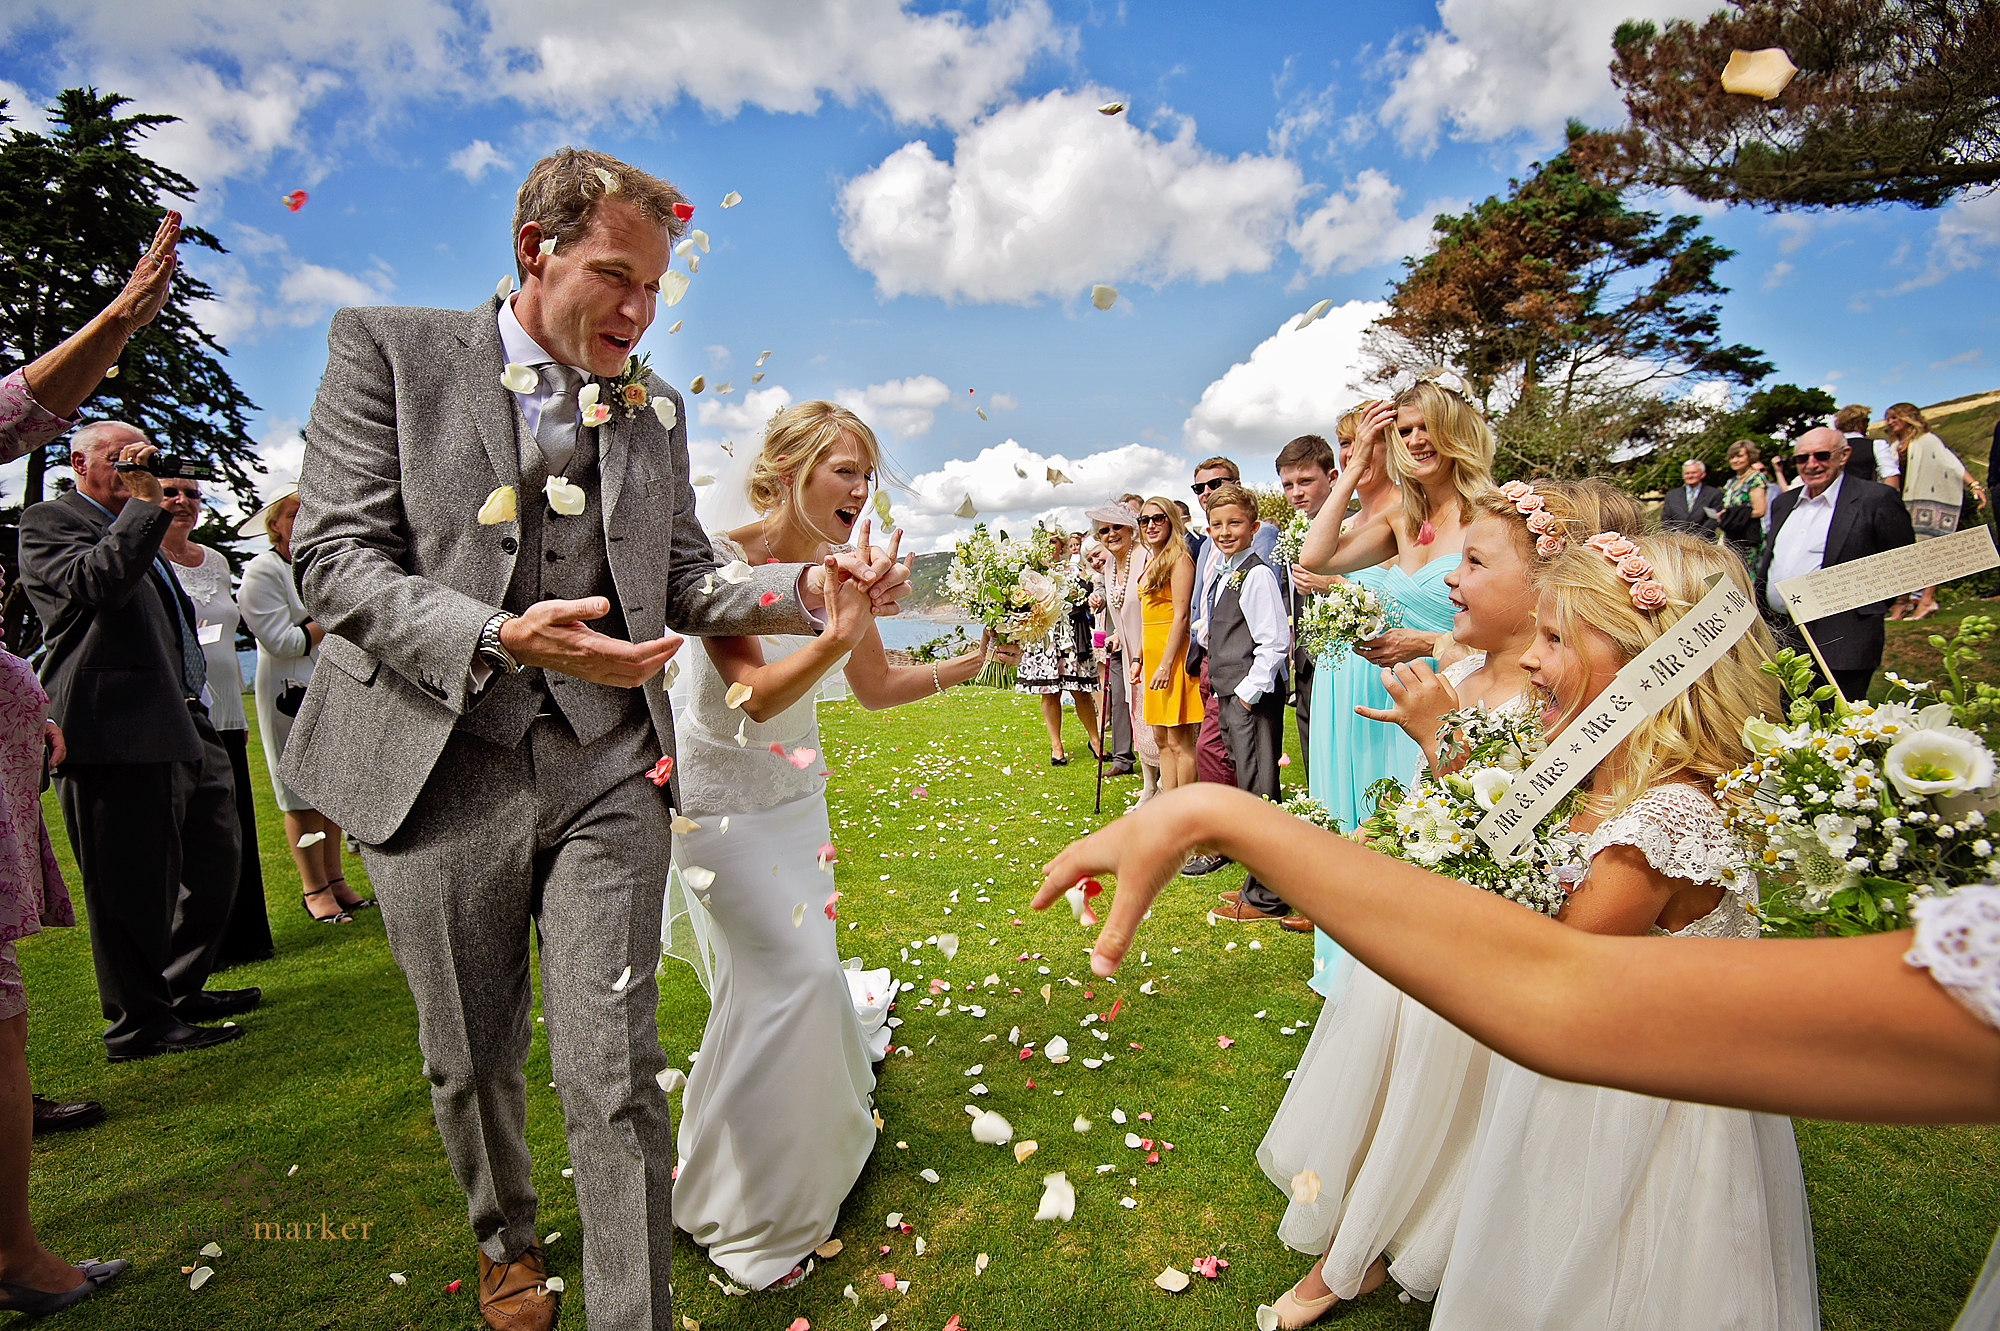 Bride and groom aon lawns of Polhawn Fort encouraging flower girls to through more confetti